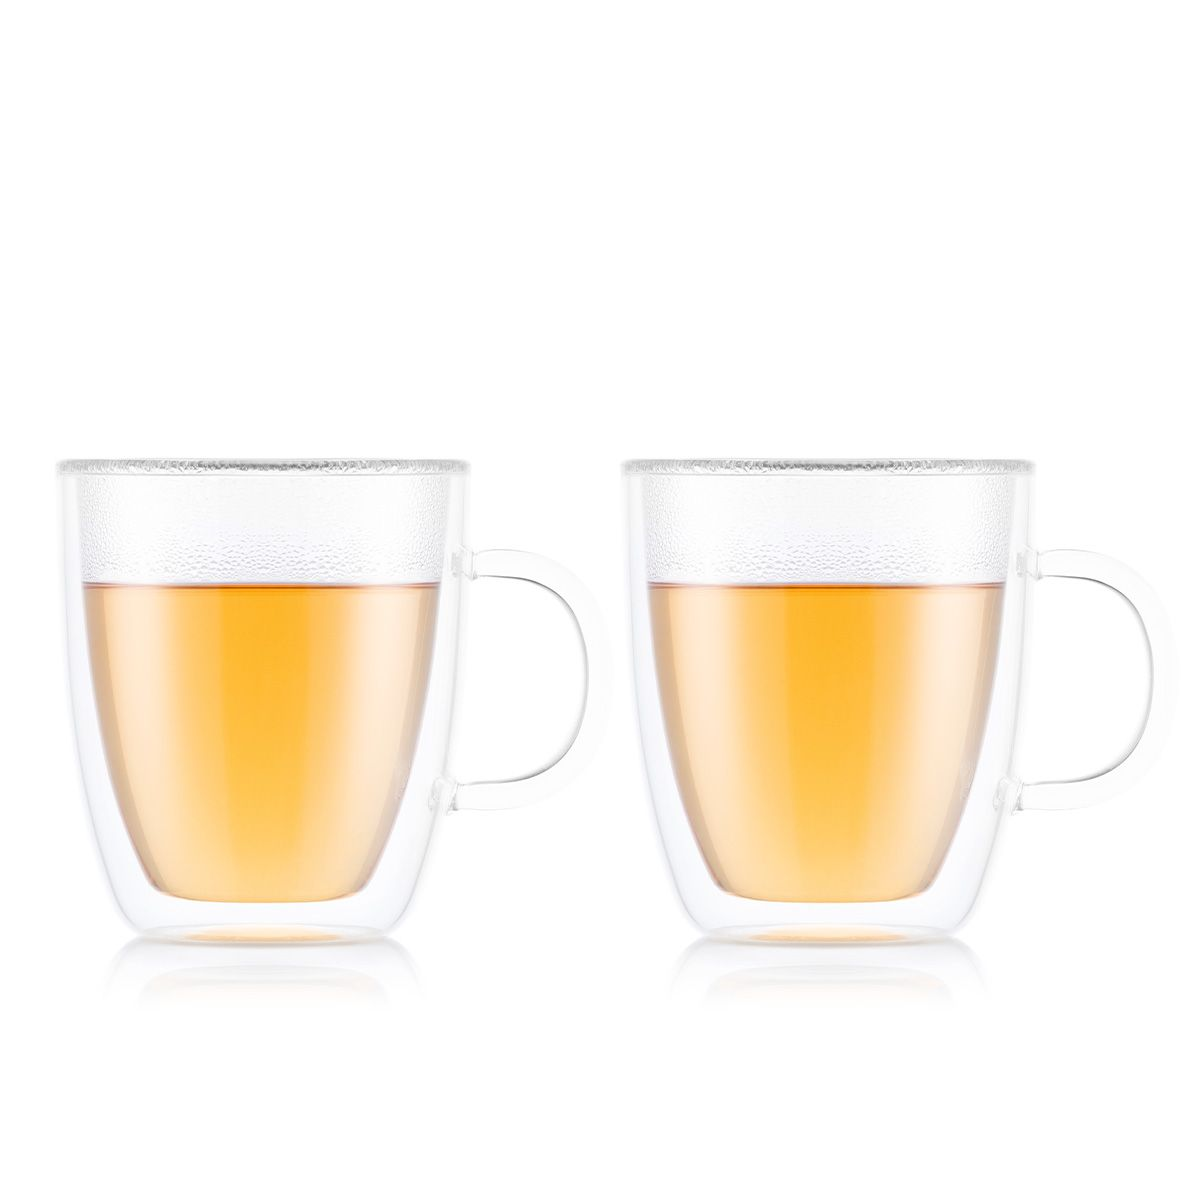 Double Wall Glass Mug BISTRO Bodum - 2 pieces set